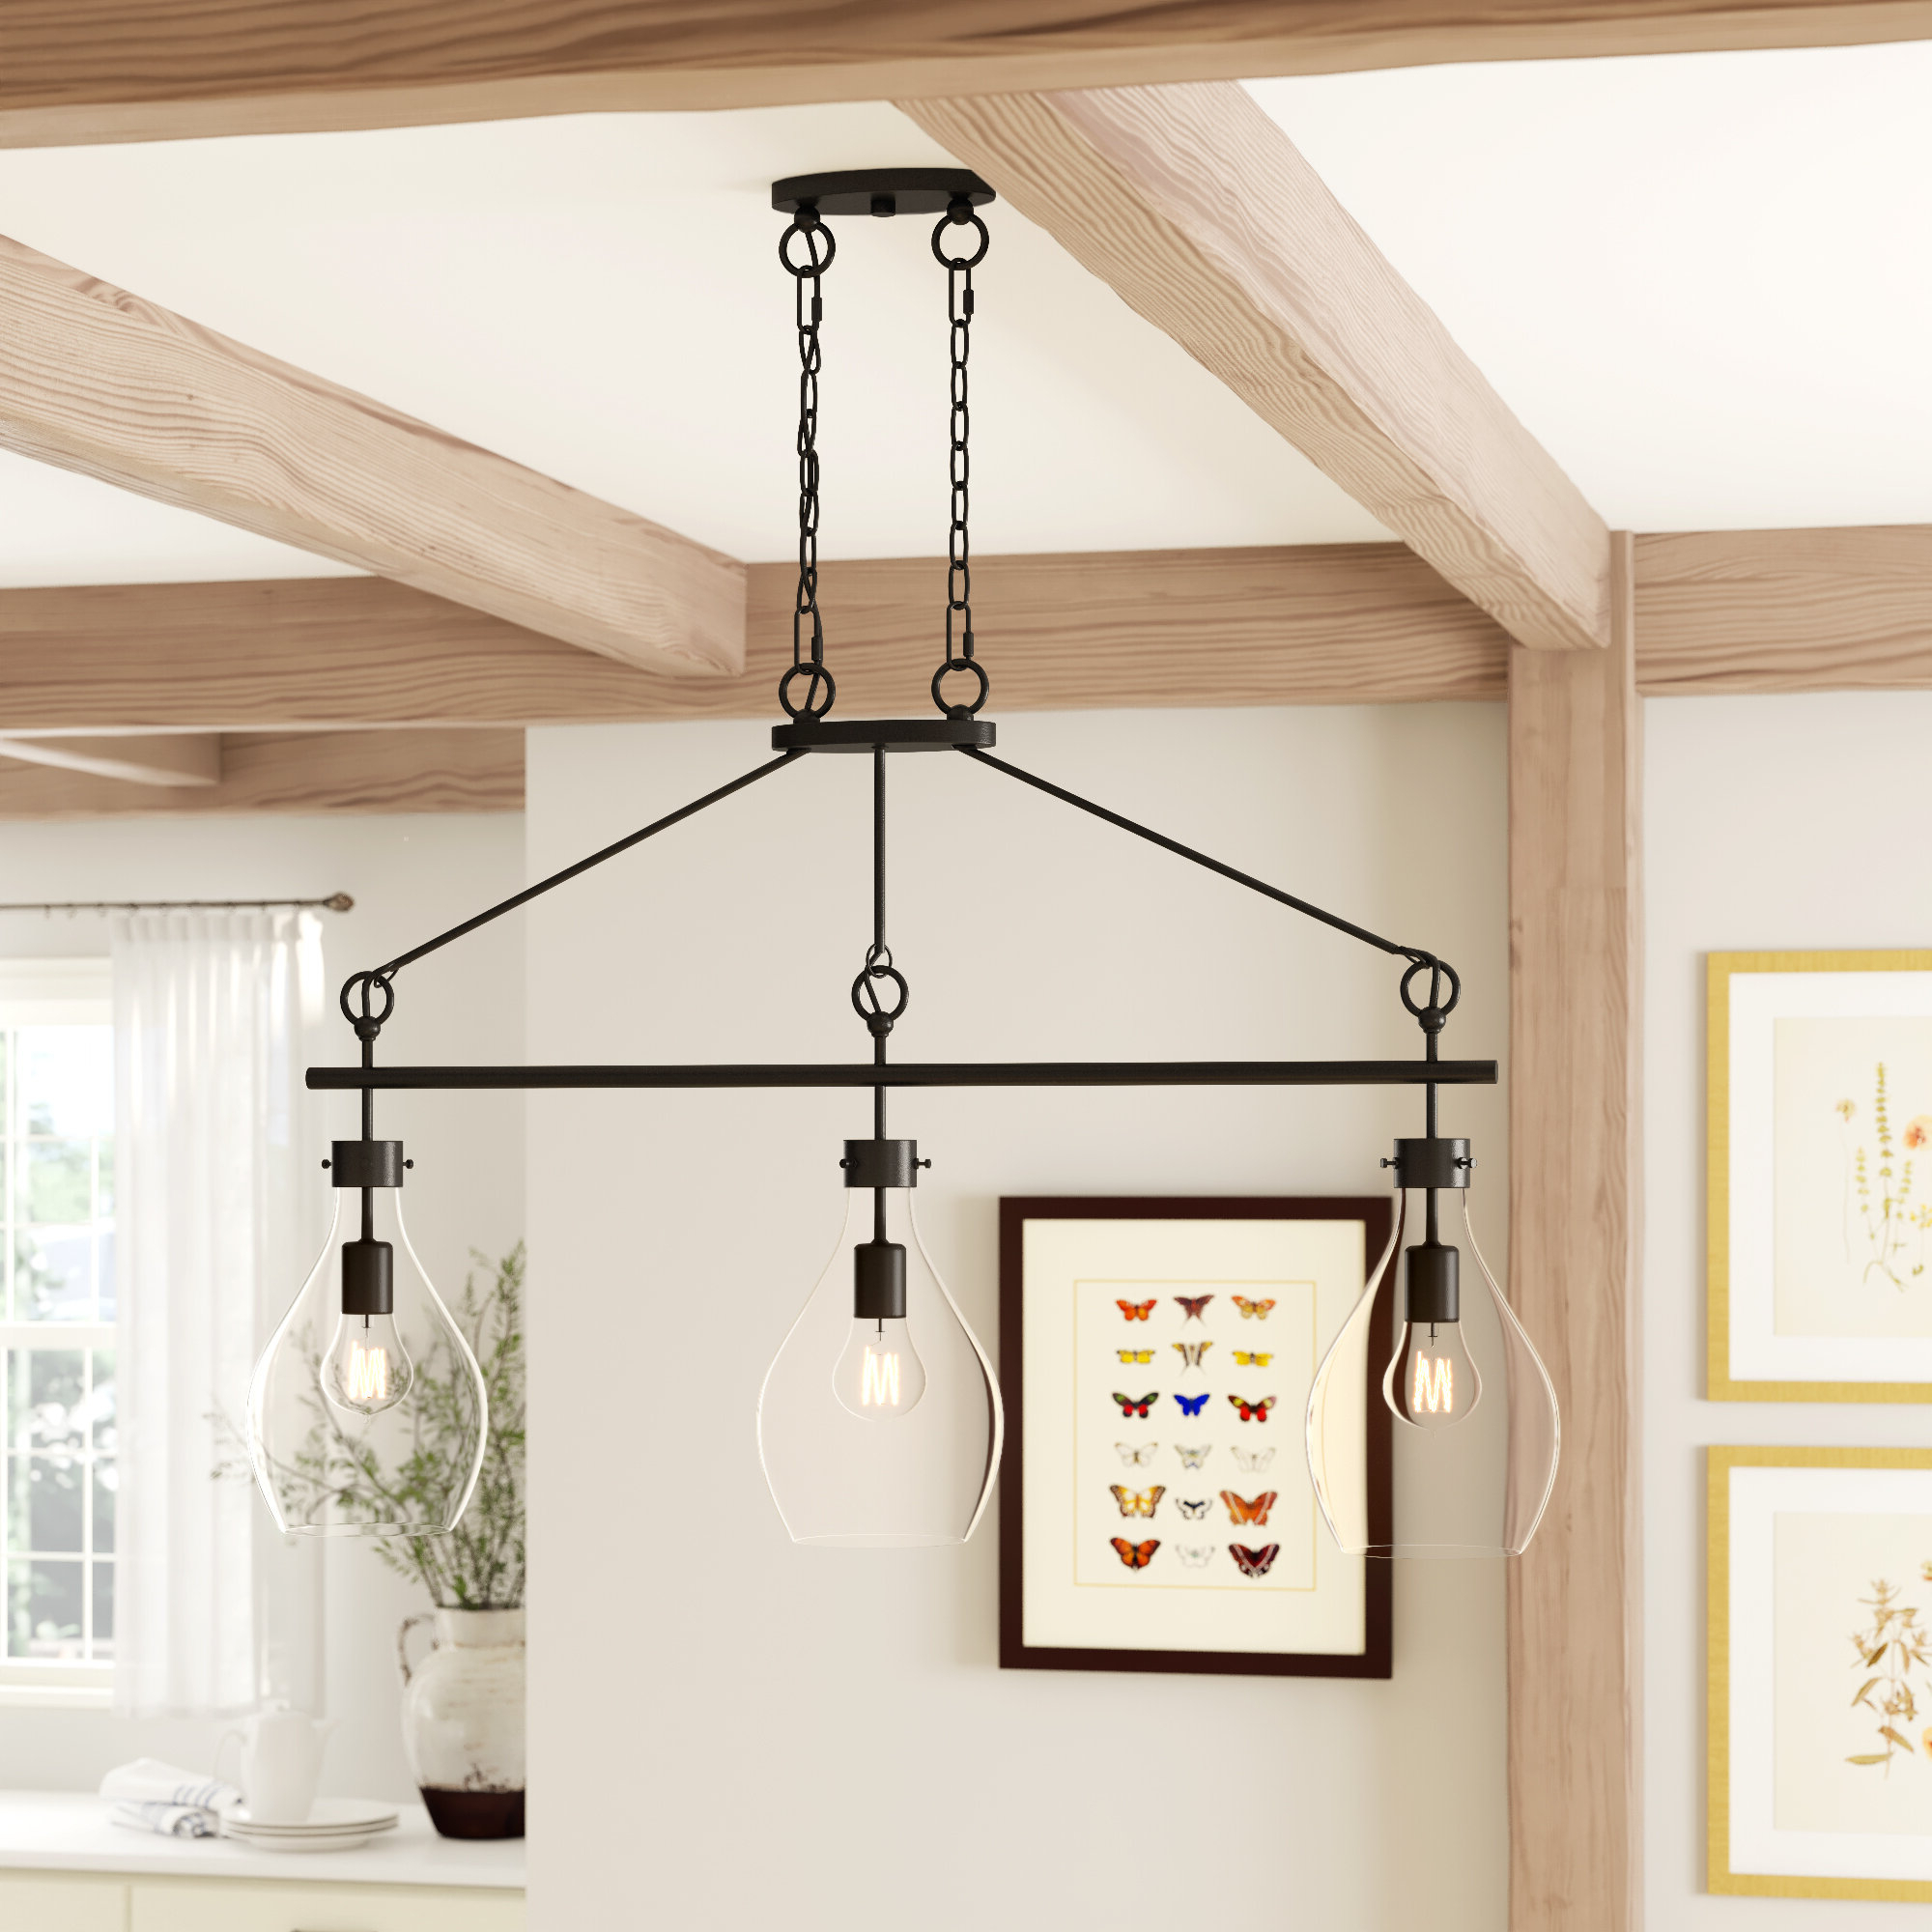 Famous Ariel 2 Light Kitchen Island Dome Pendants Inside Nan 3 Light Kitchen Island Teardrop Pendant (View 15 of 25)